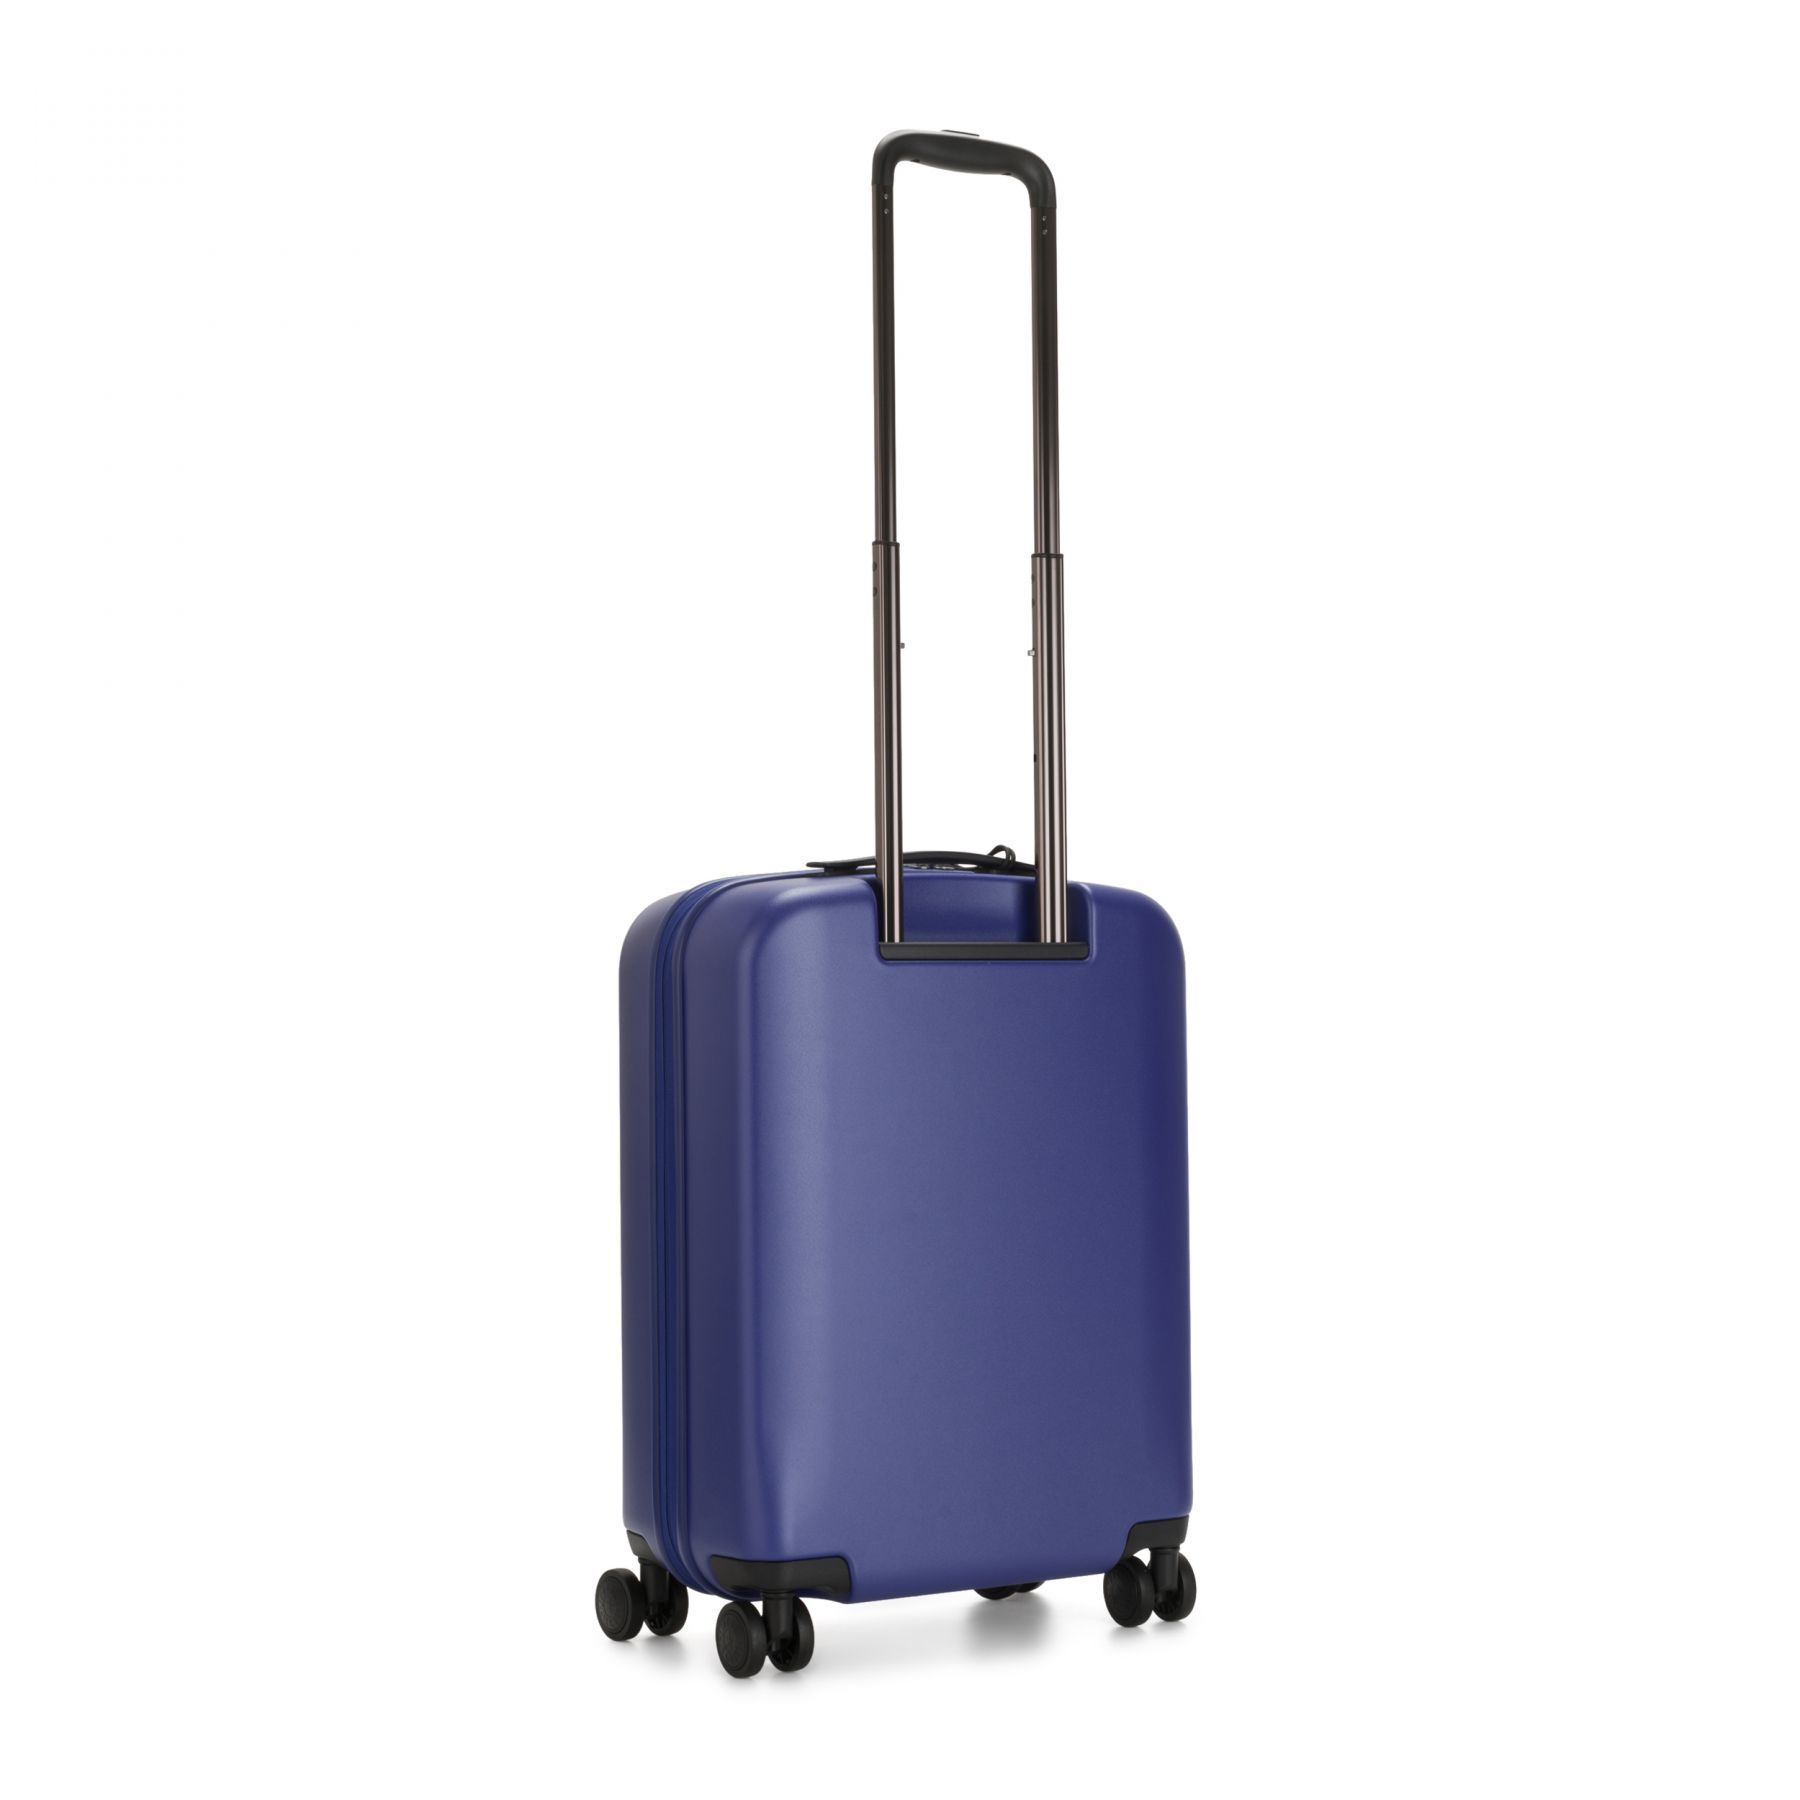 CURIOSITY S Latest Luggage by Kipling - Back view